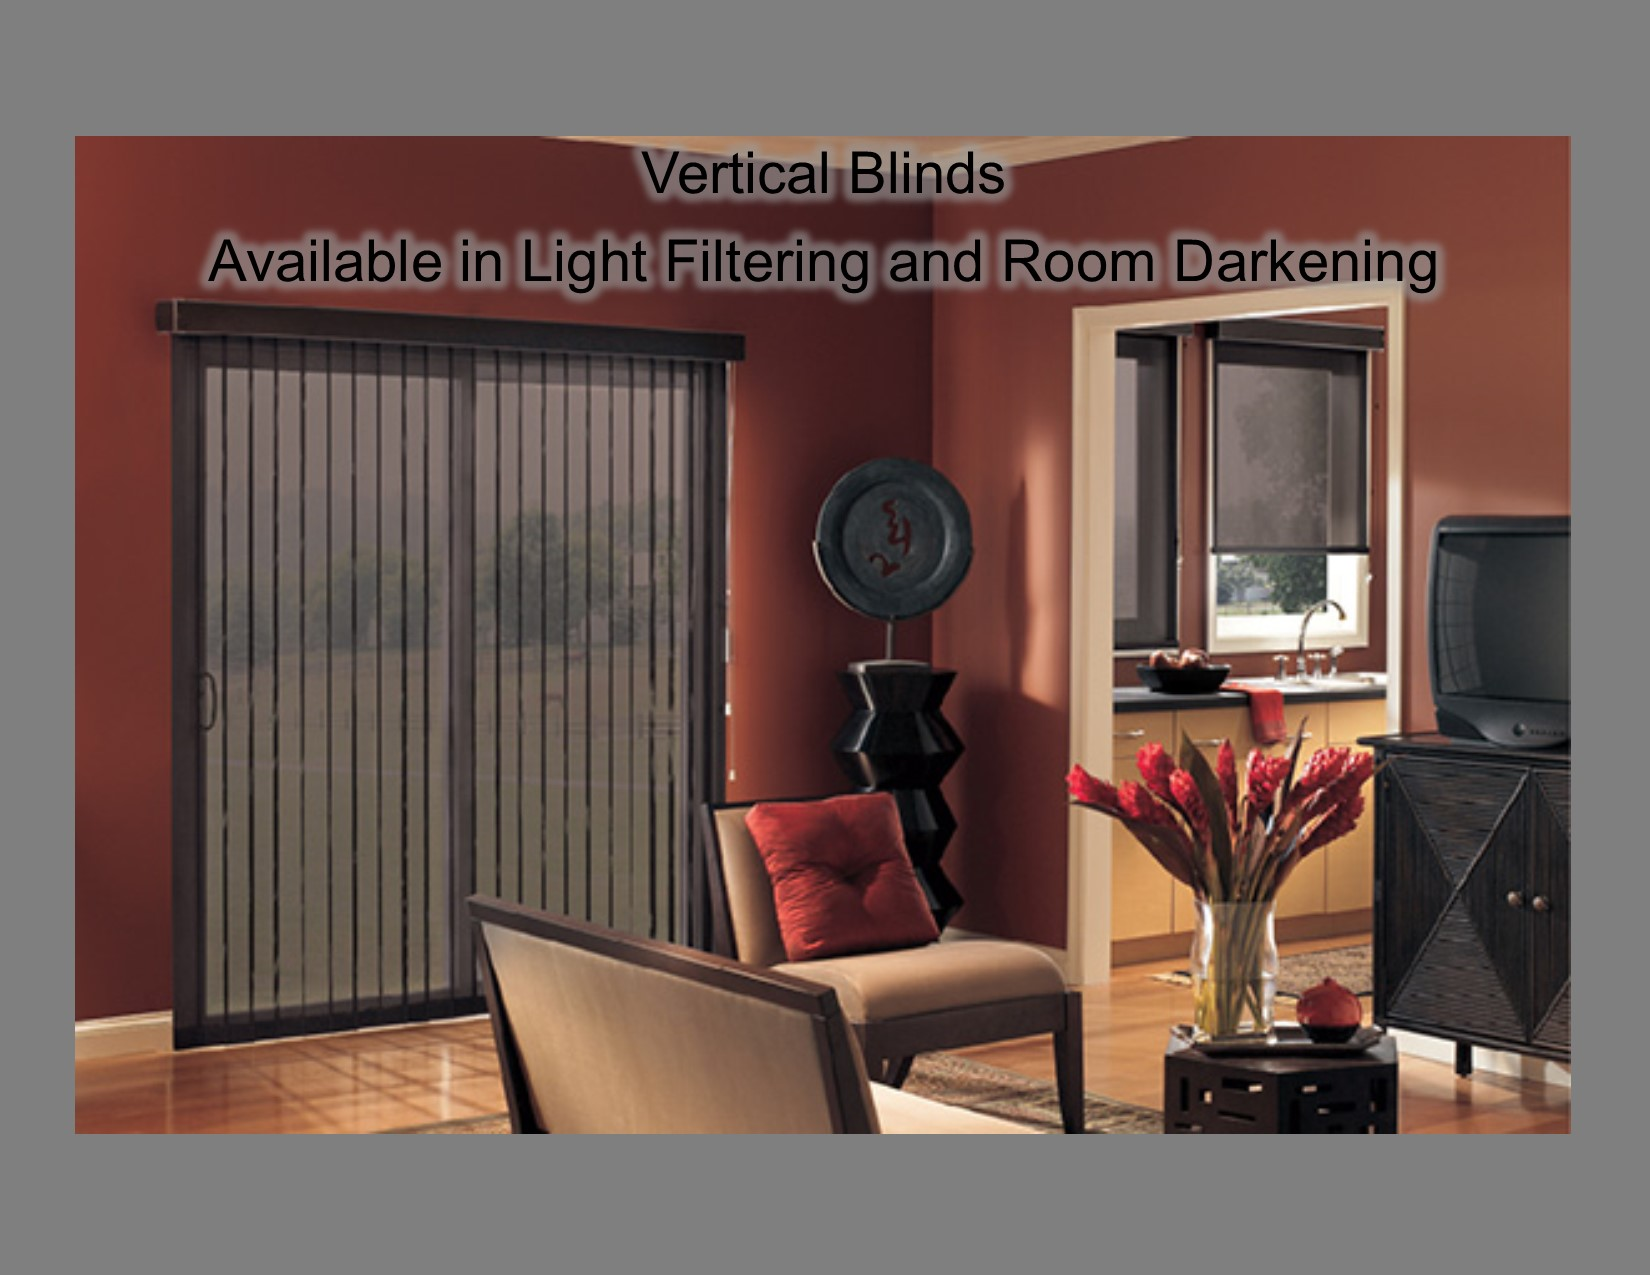 Vertical_Blinds.jpg